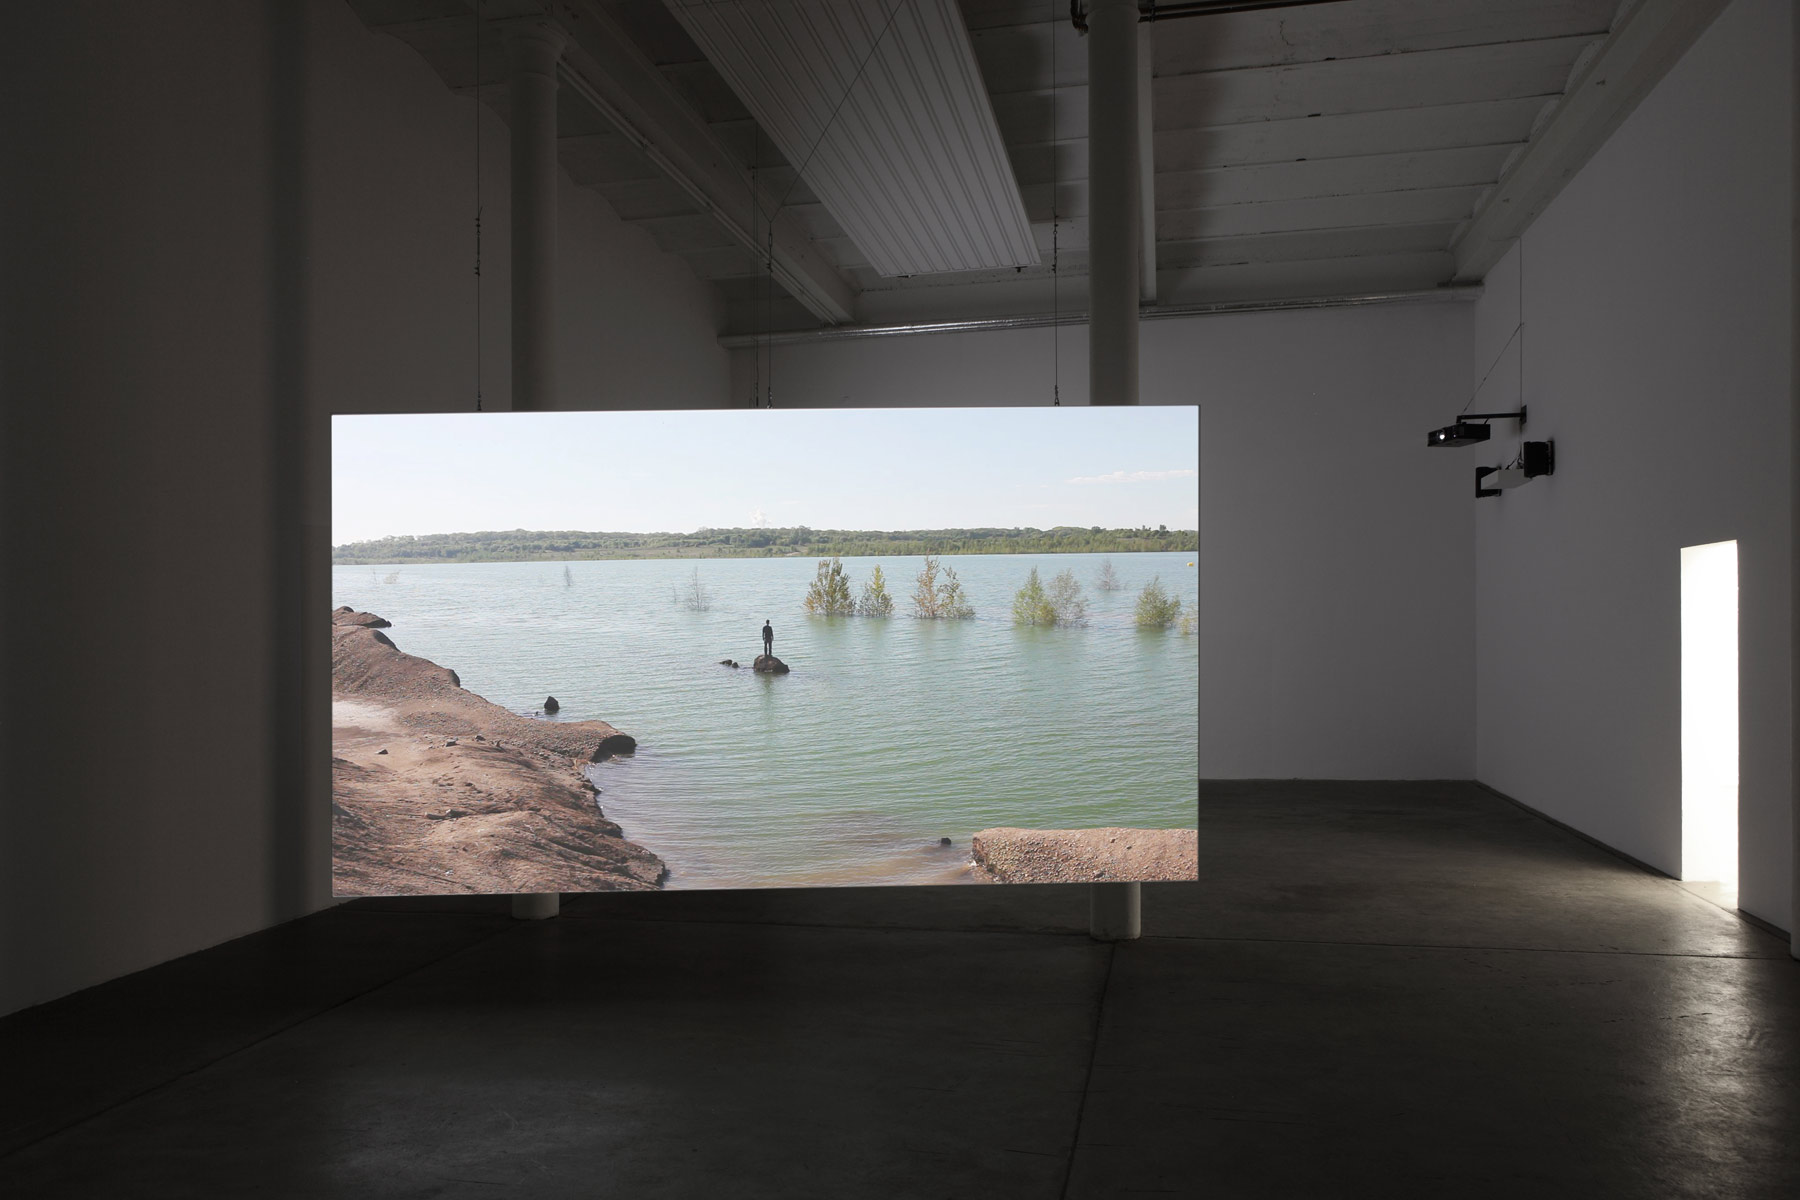 Stumpf-Installation-View,-Islands,-2014,-Galerie-Kleindienst,-Leipzig.jpg